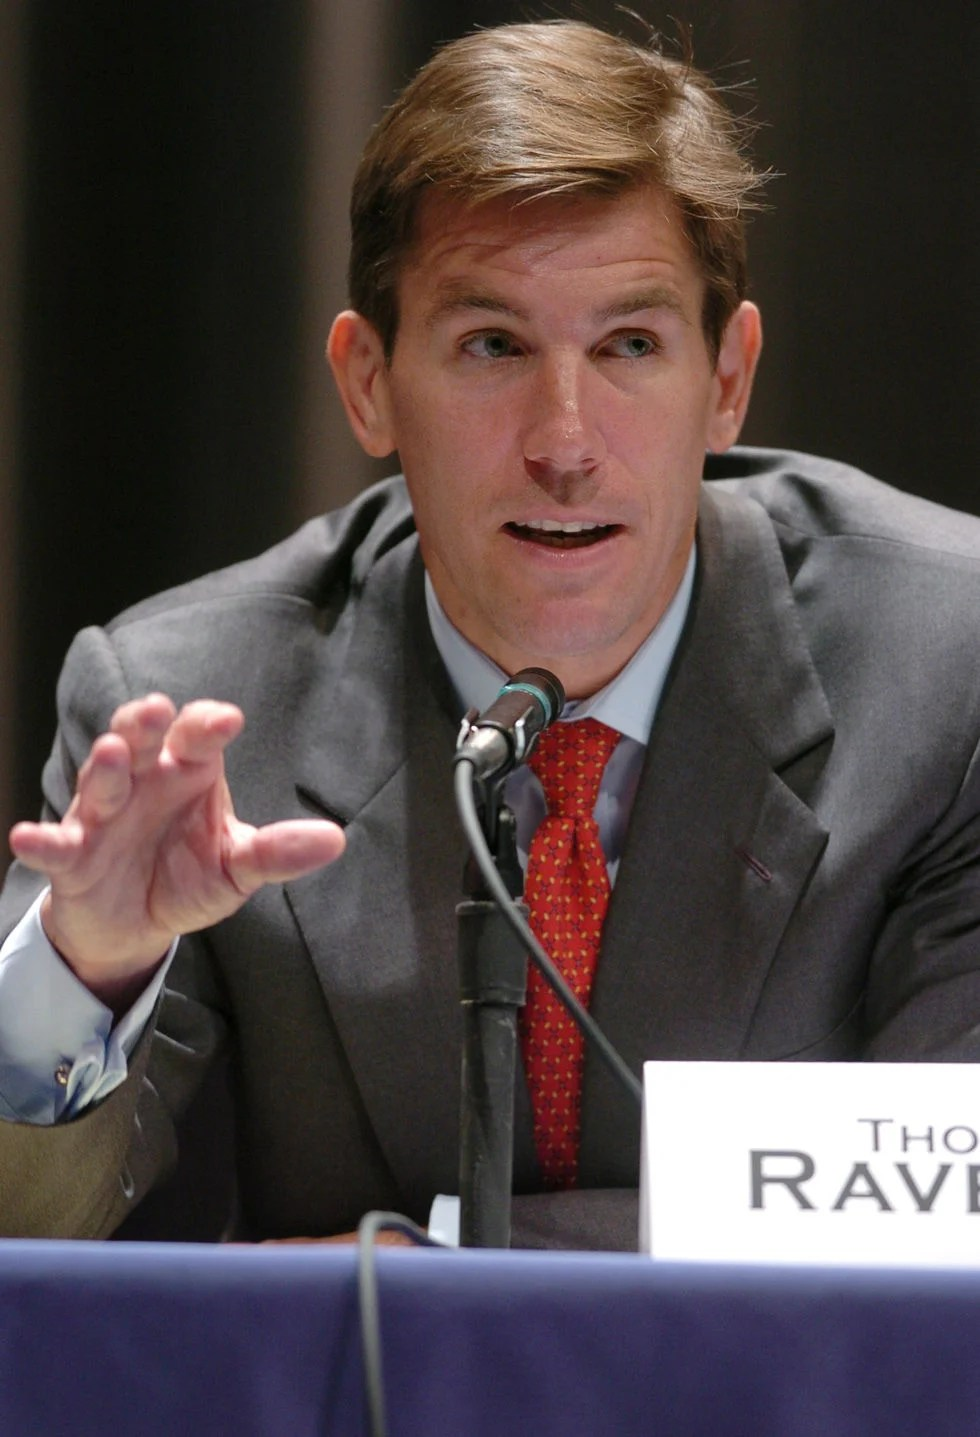 Thomas Ravenel accused of harassing former consultant Will